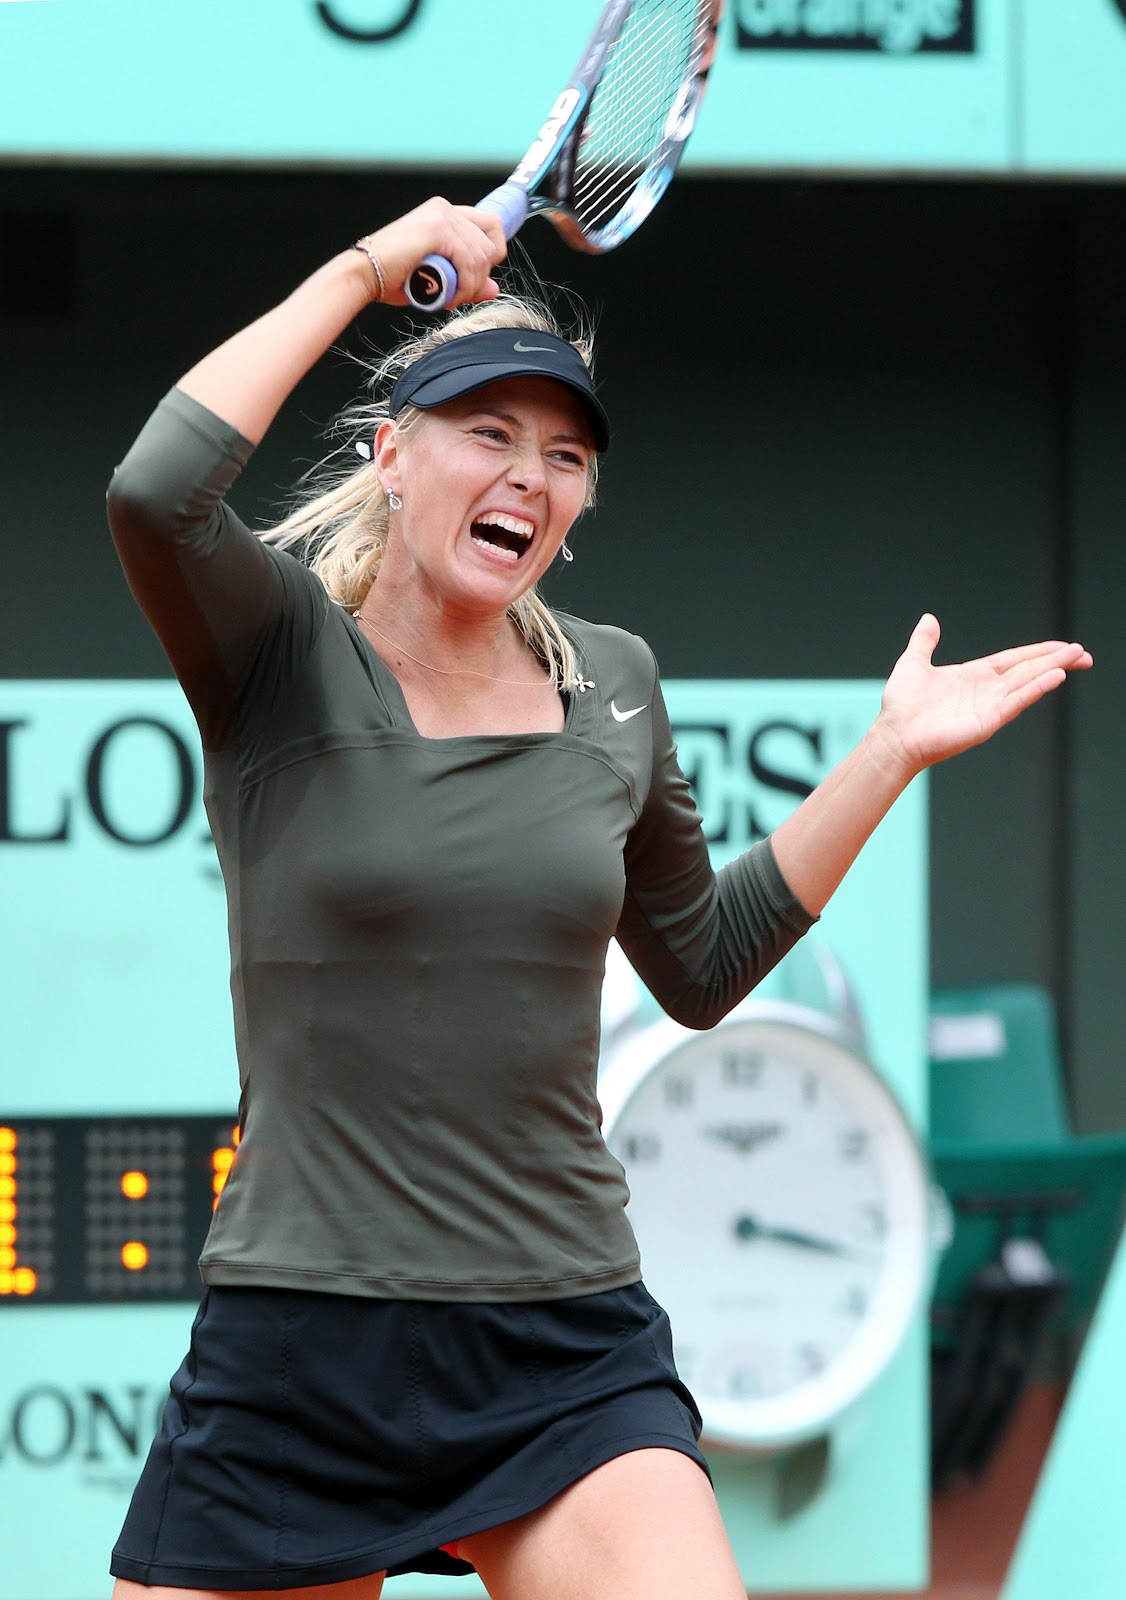 Maria Sharapova Playing In The French Open 2012 In Paris